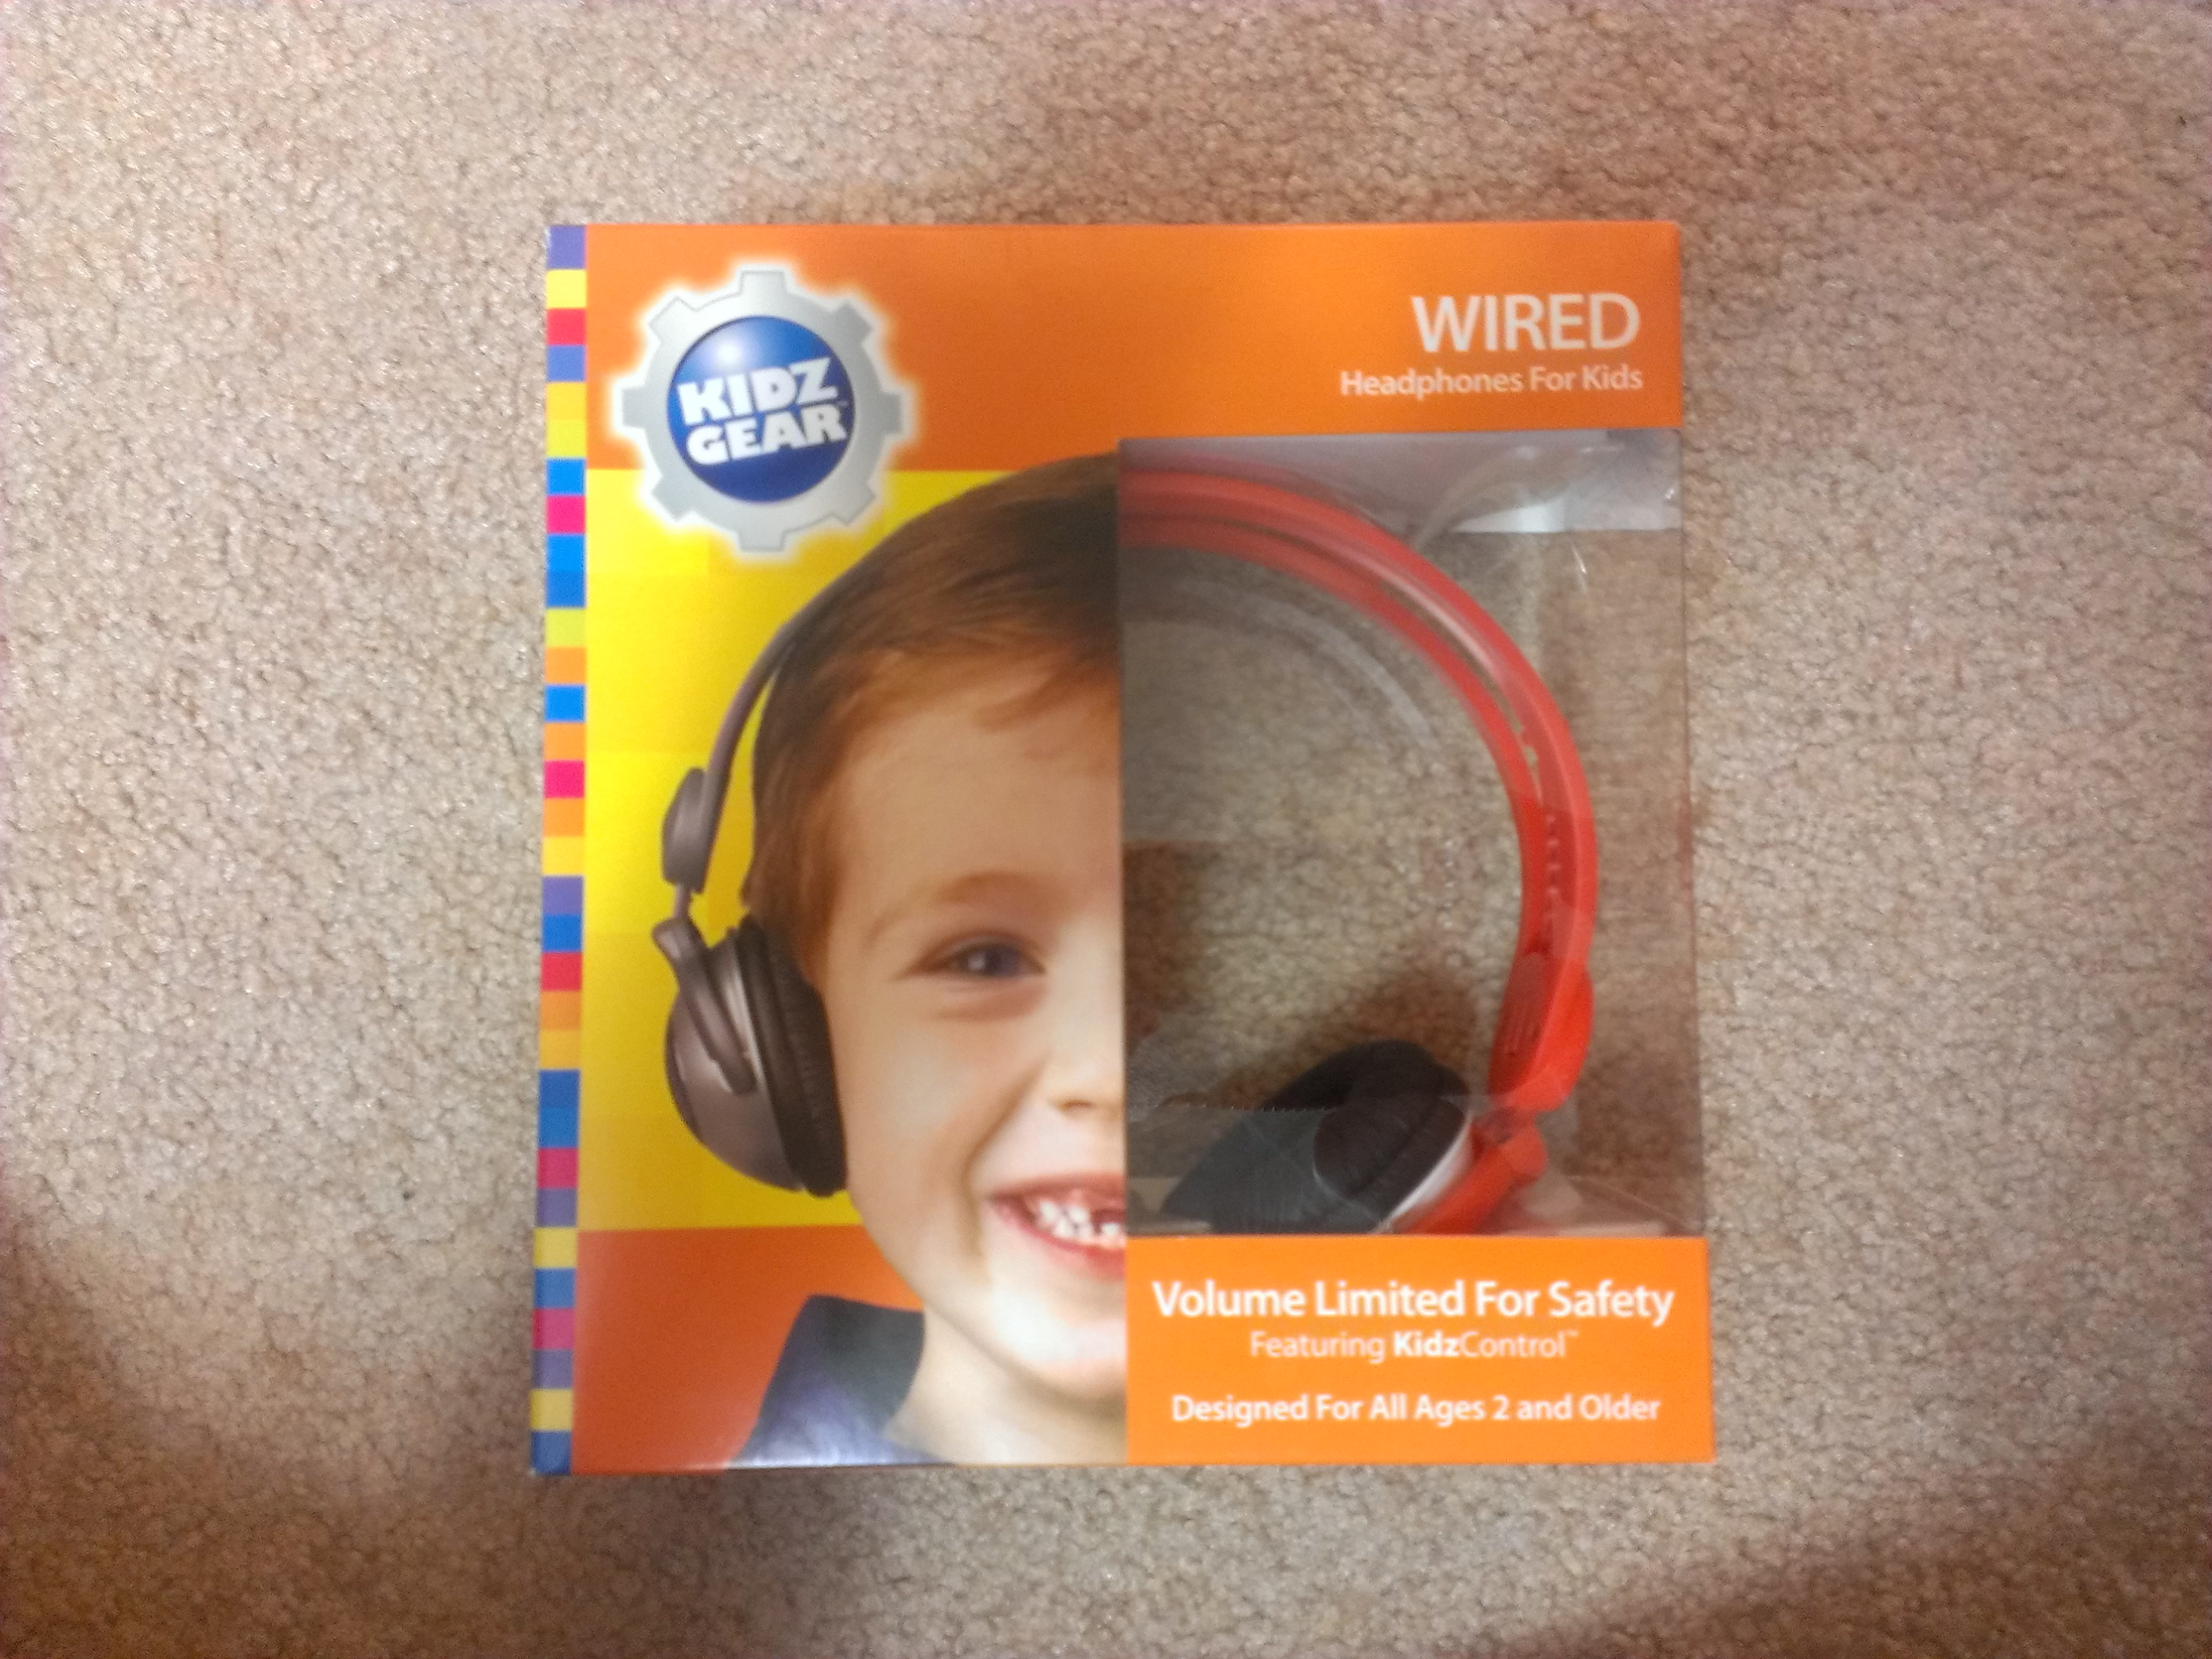 Kidz Gear volume limiting headphones